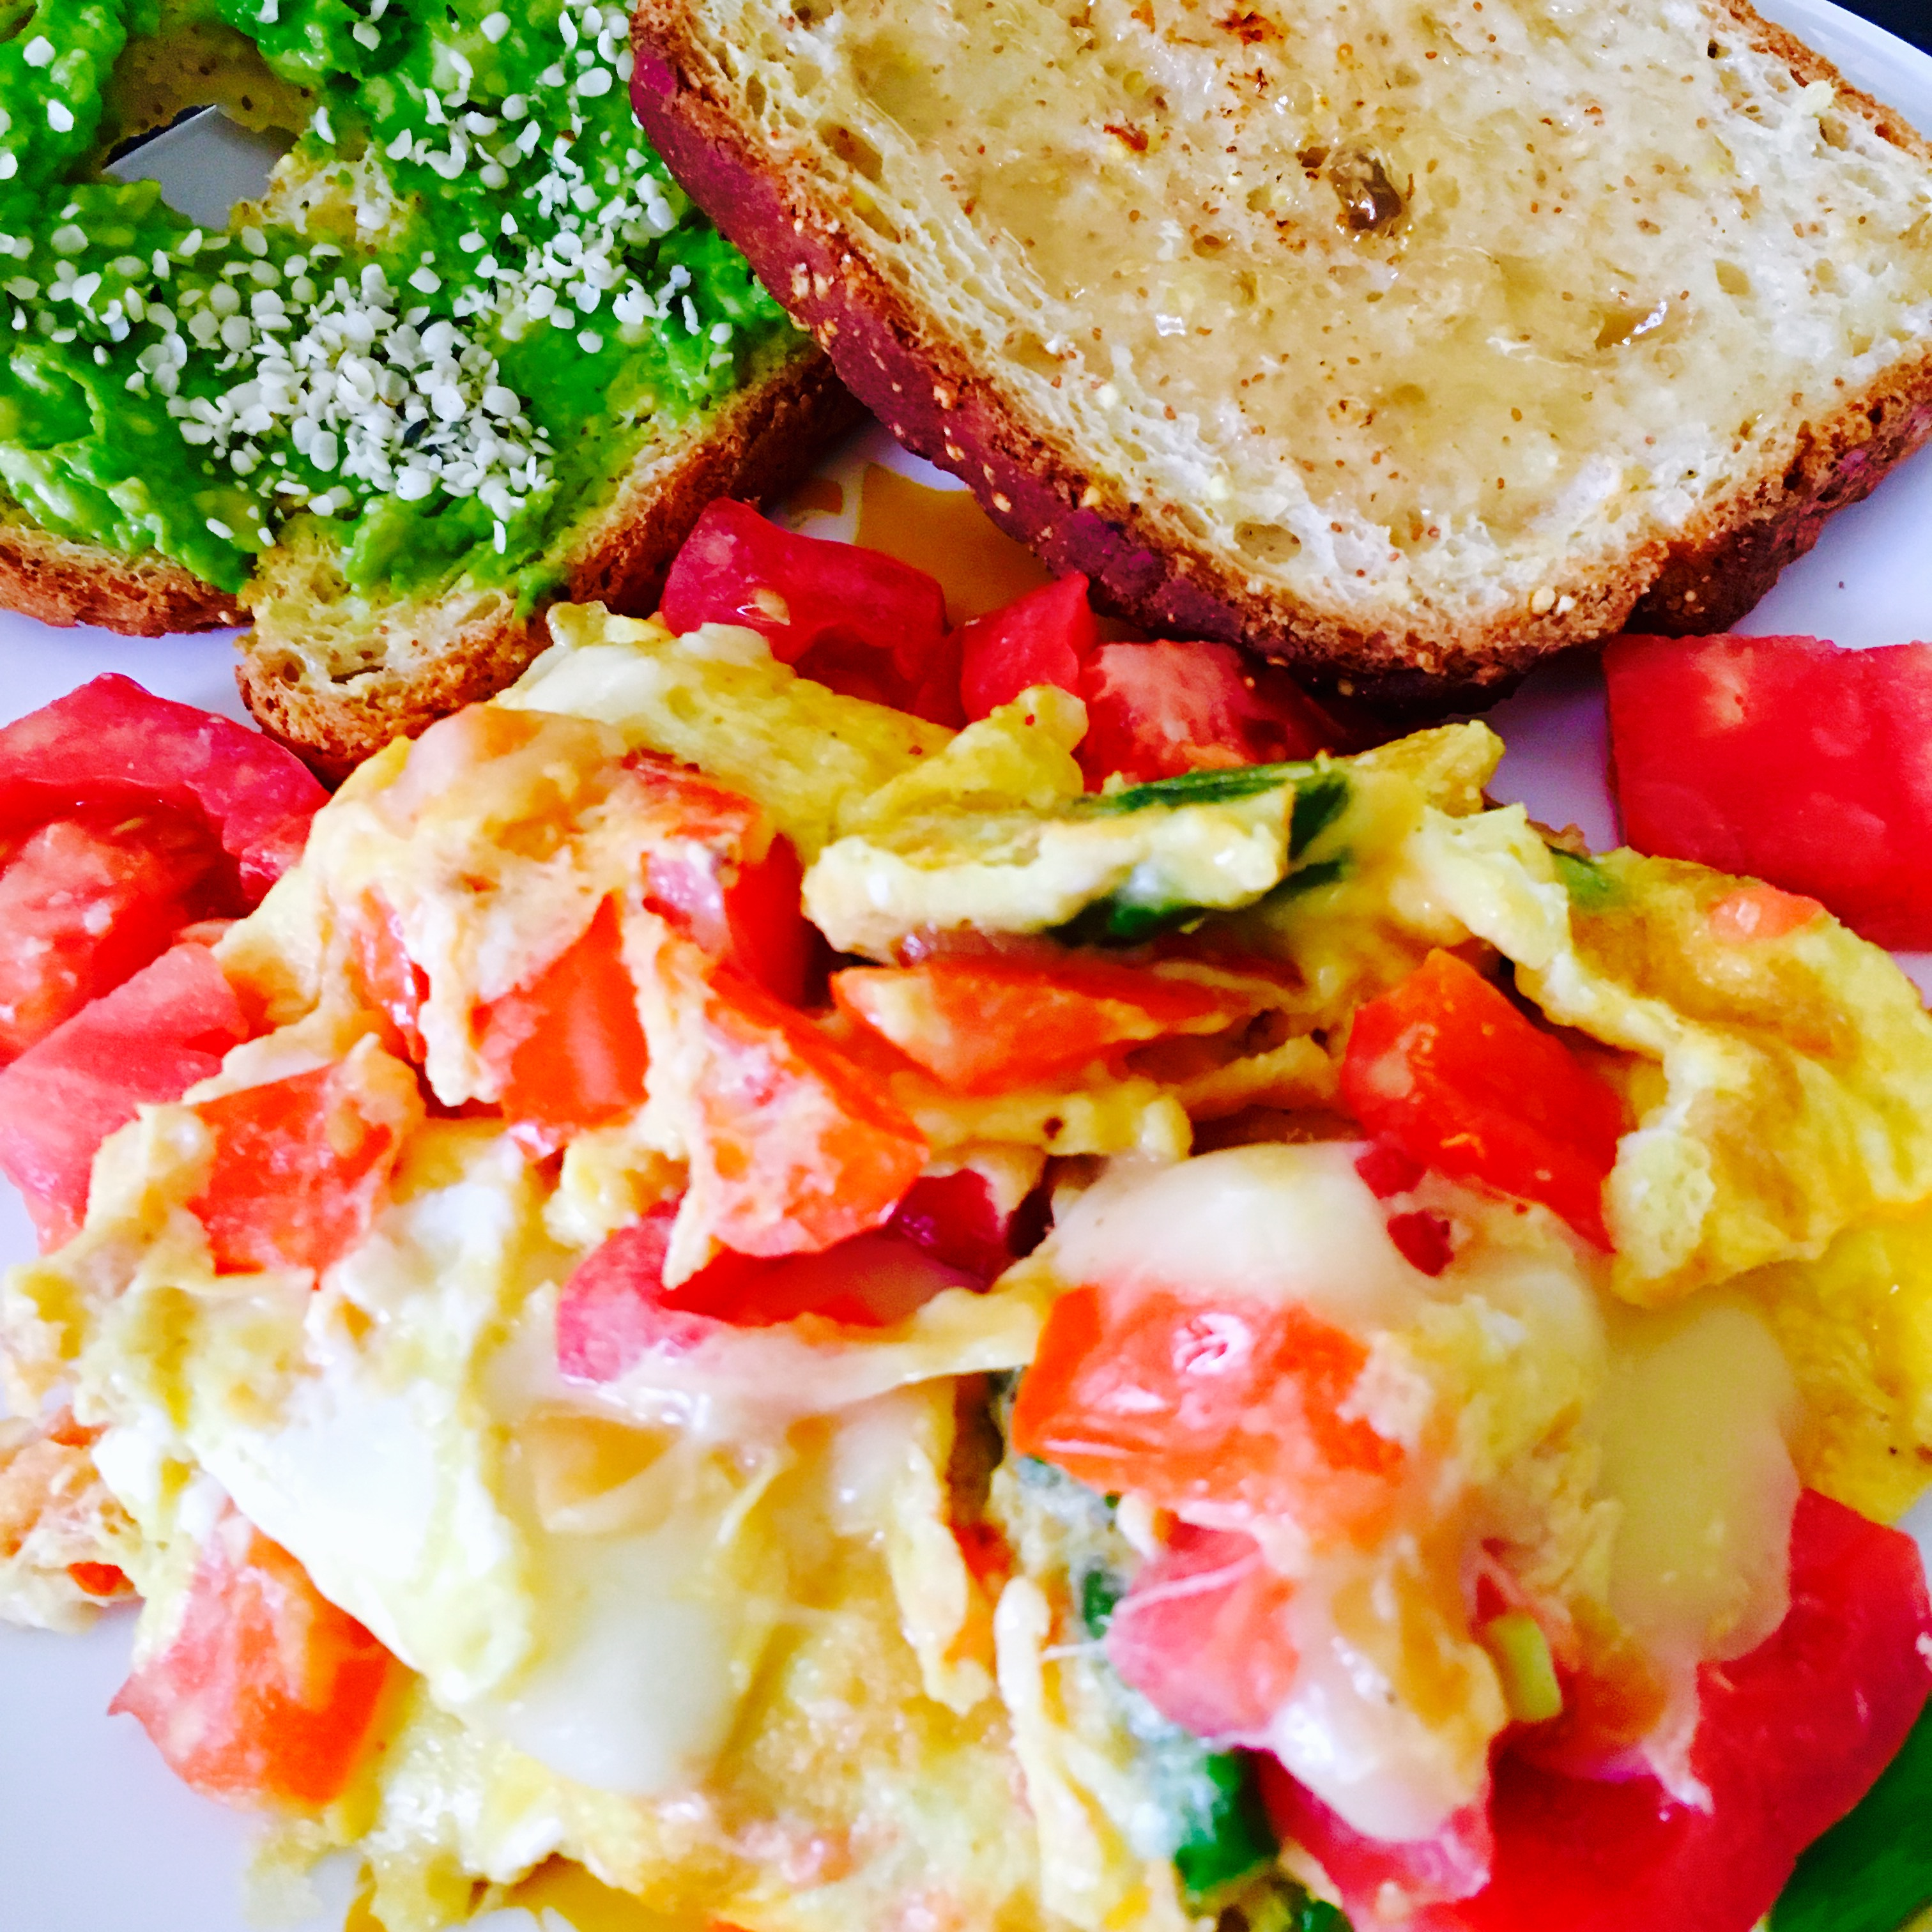 Egg scramble with smashed avocado and jelly toast